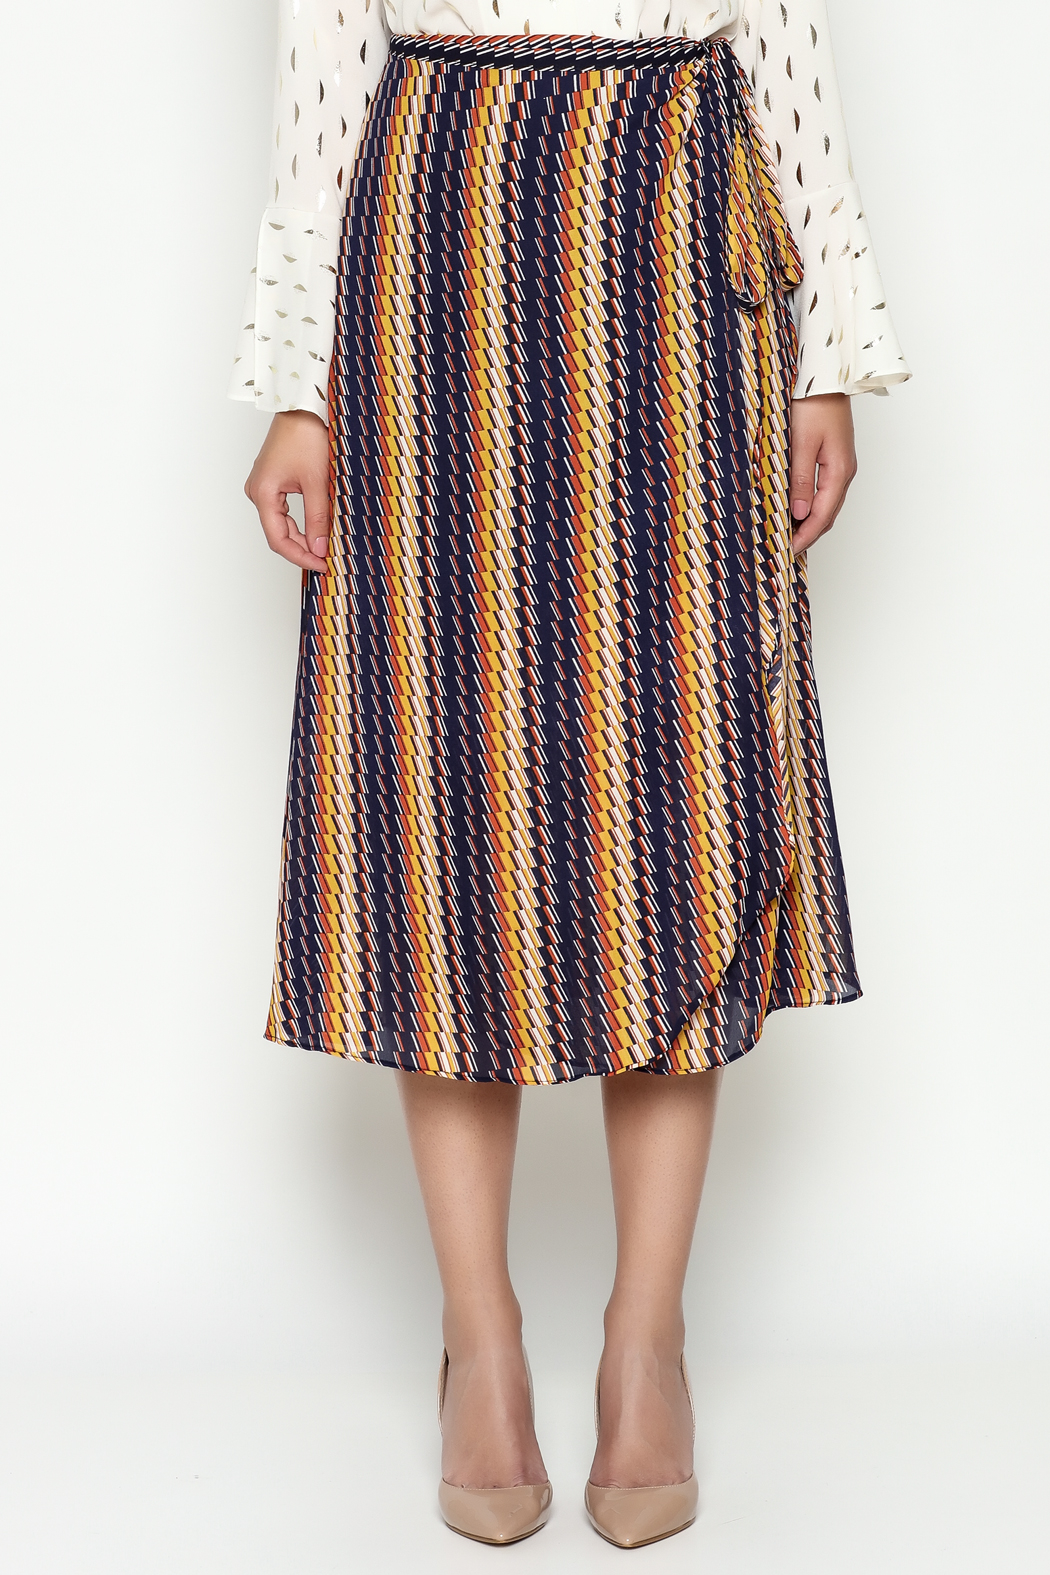 THINK CLOSET Wrap Skirt - Front Full Image